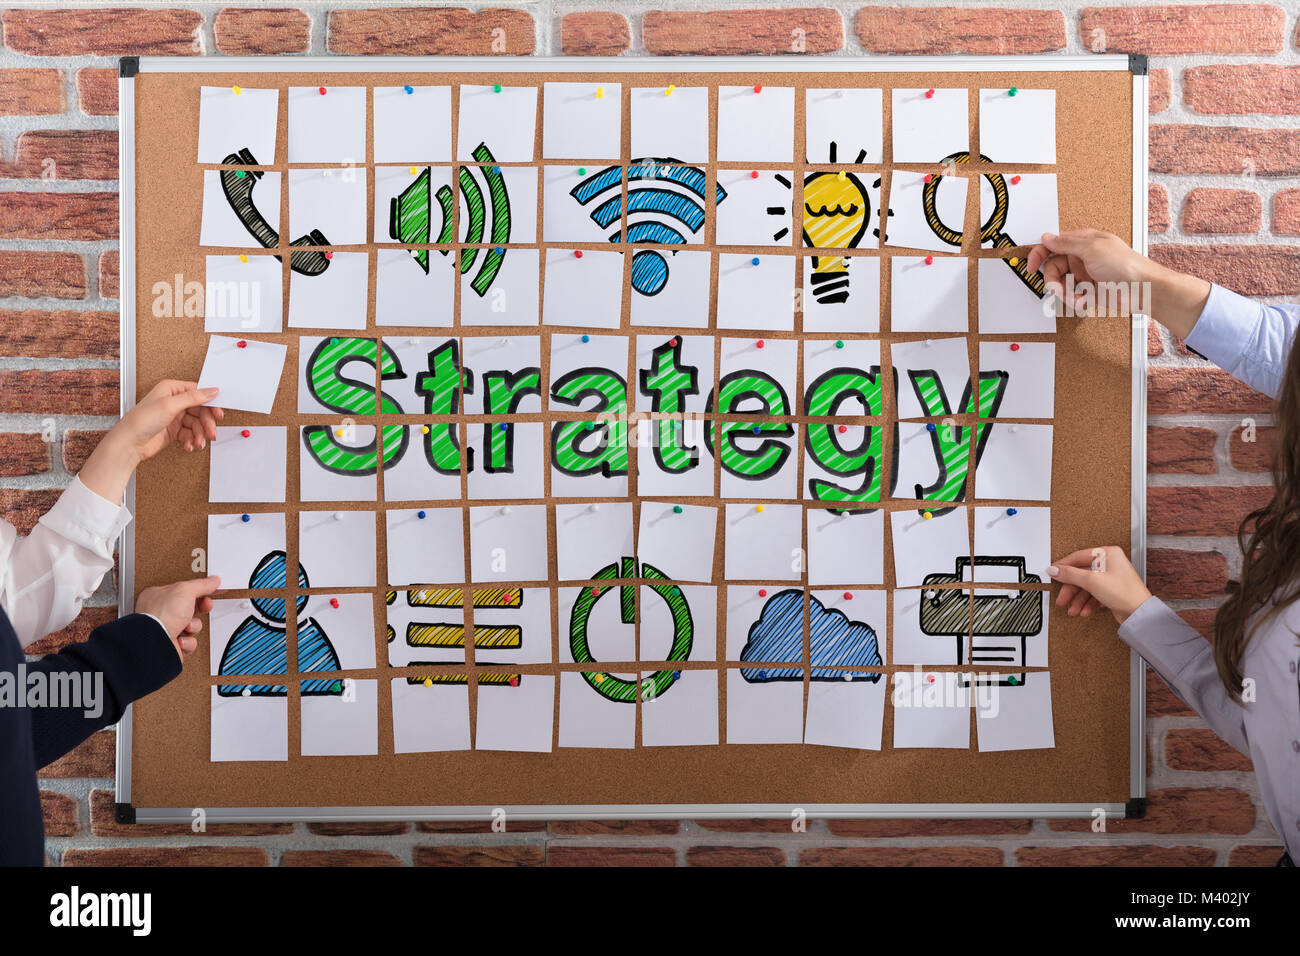 Business People Hands Making Strategy Concept With Adhesive Notes On Corkboard - Stock Image